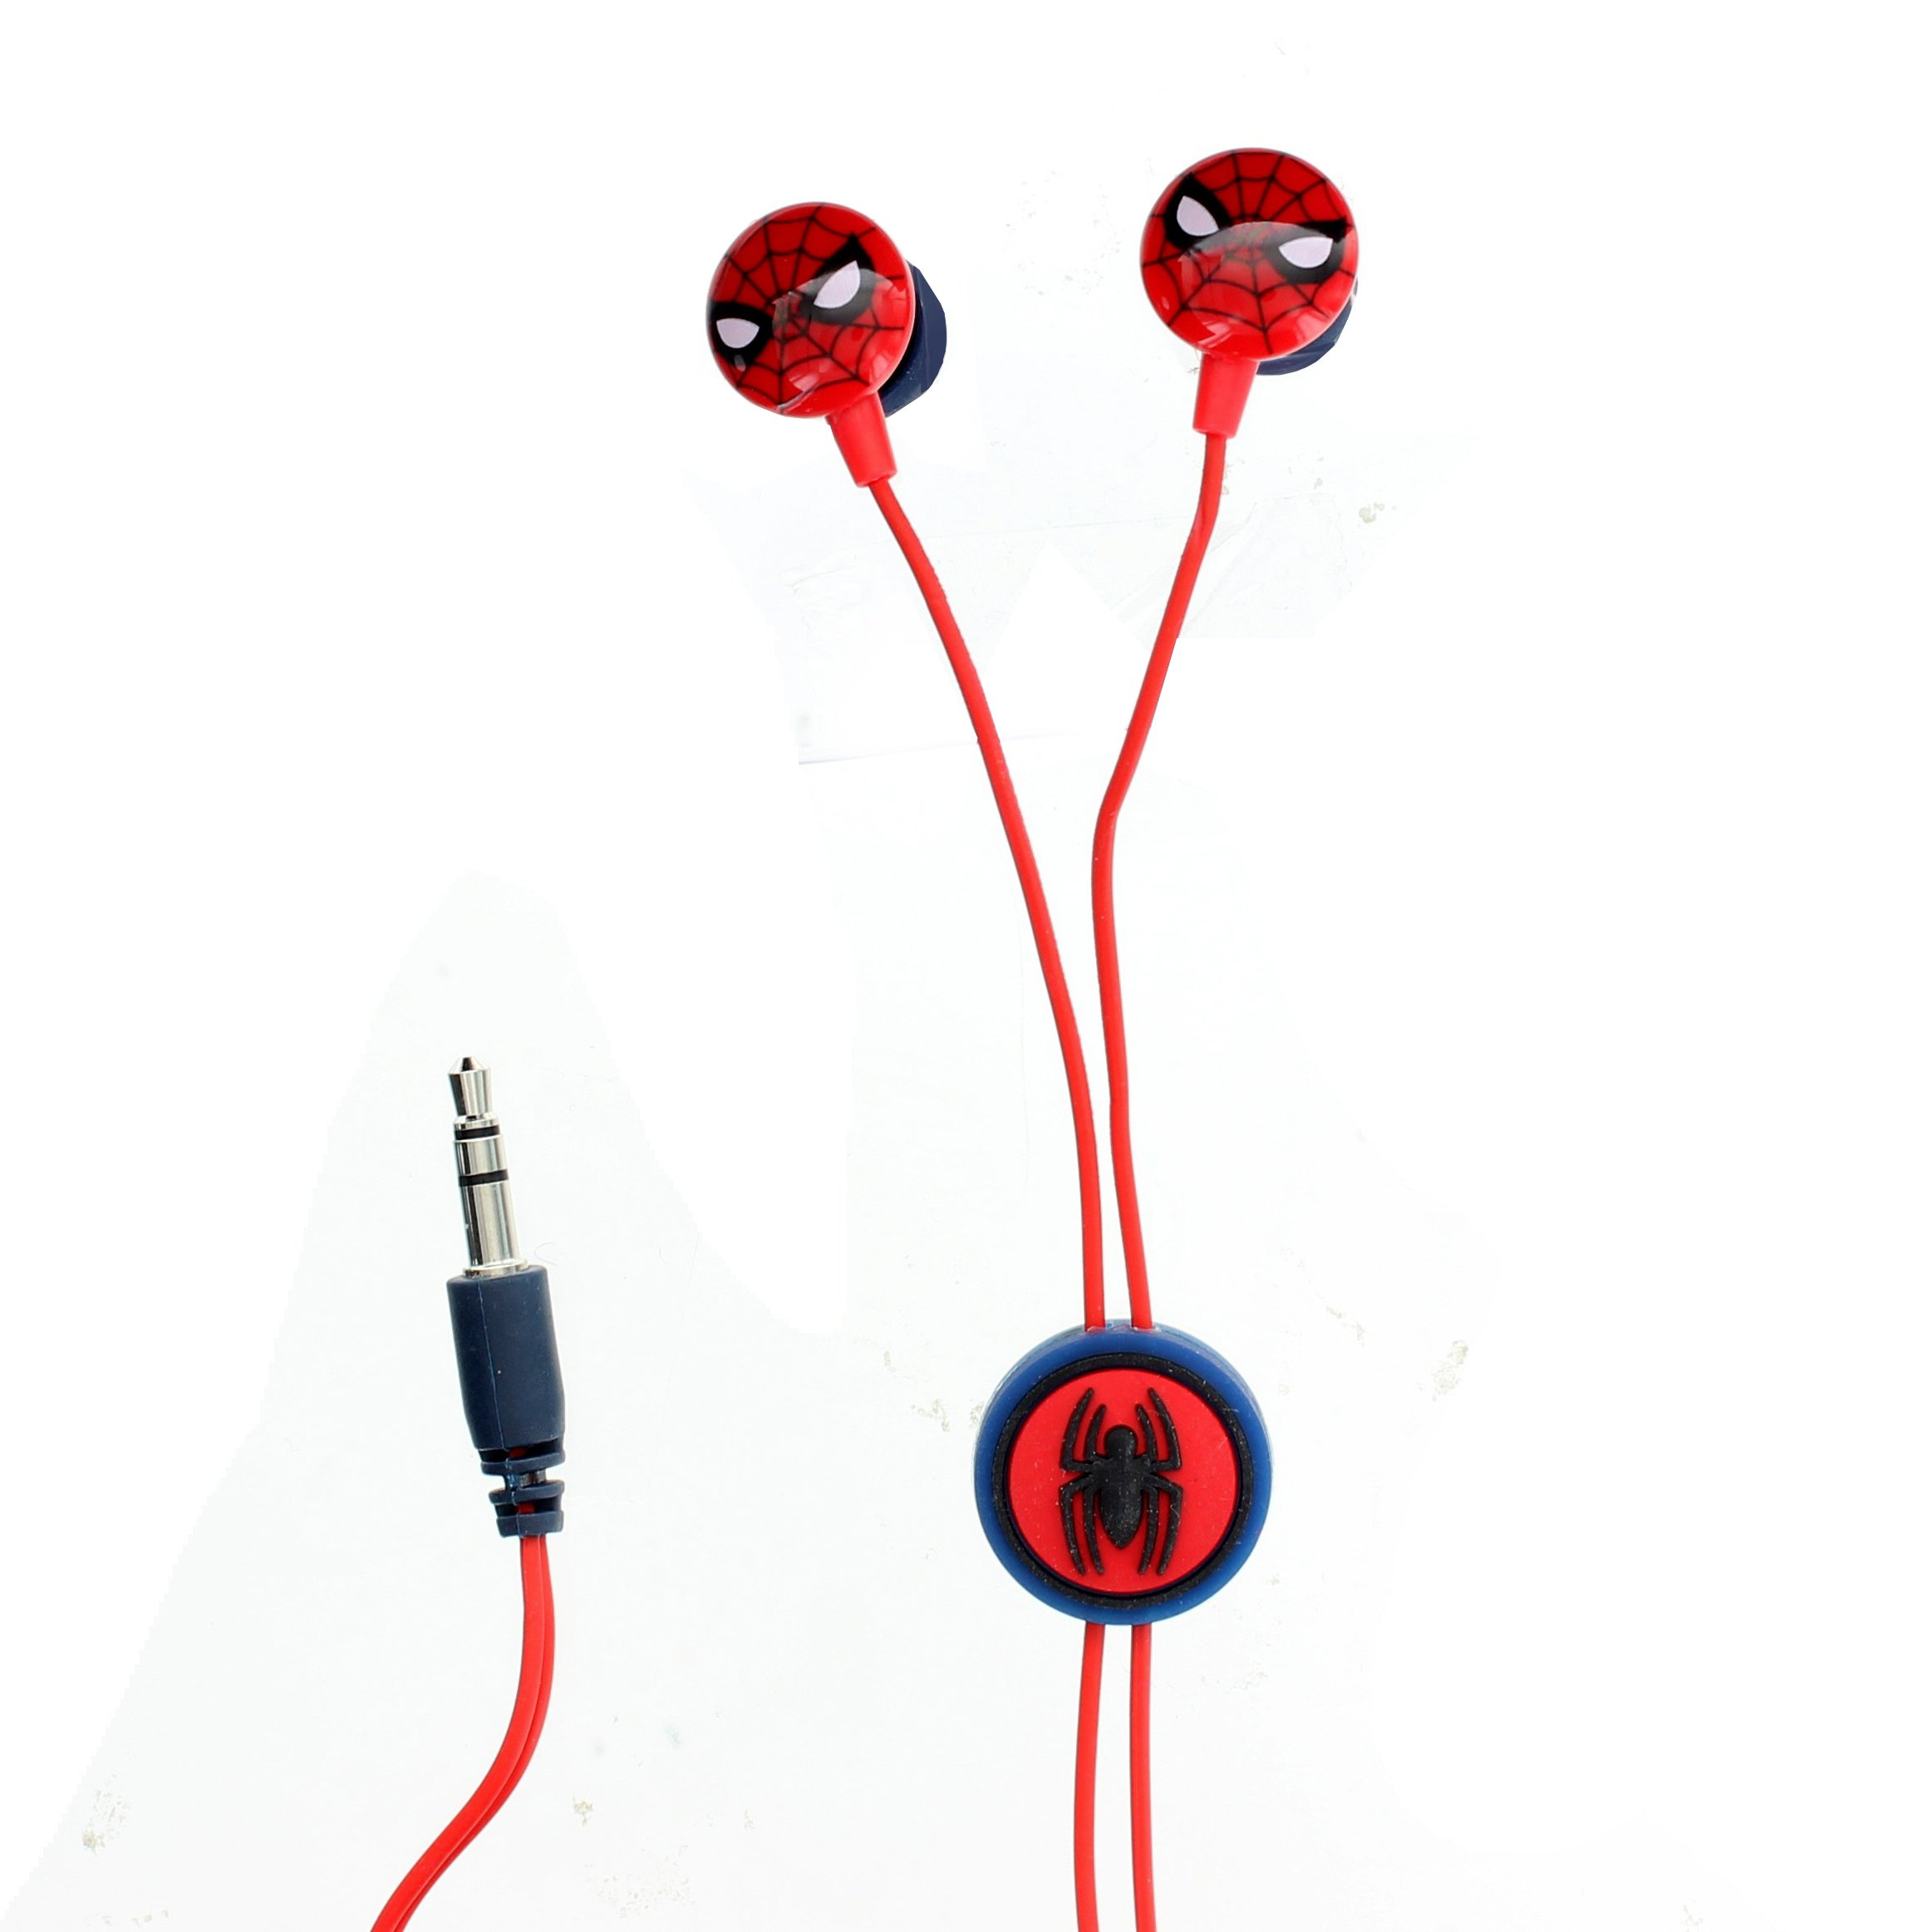 Spider Man Earphones Image